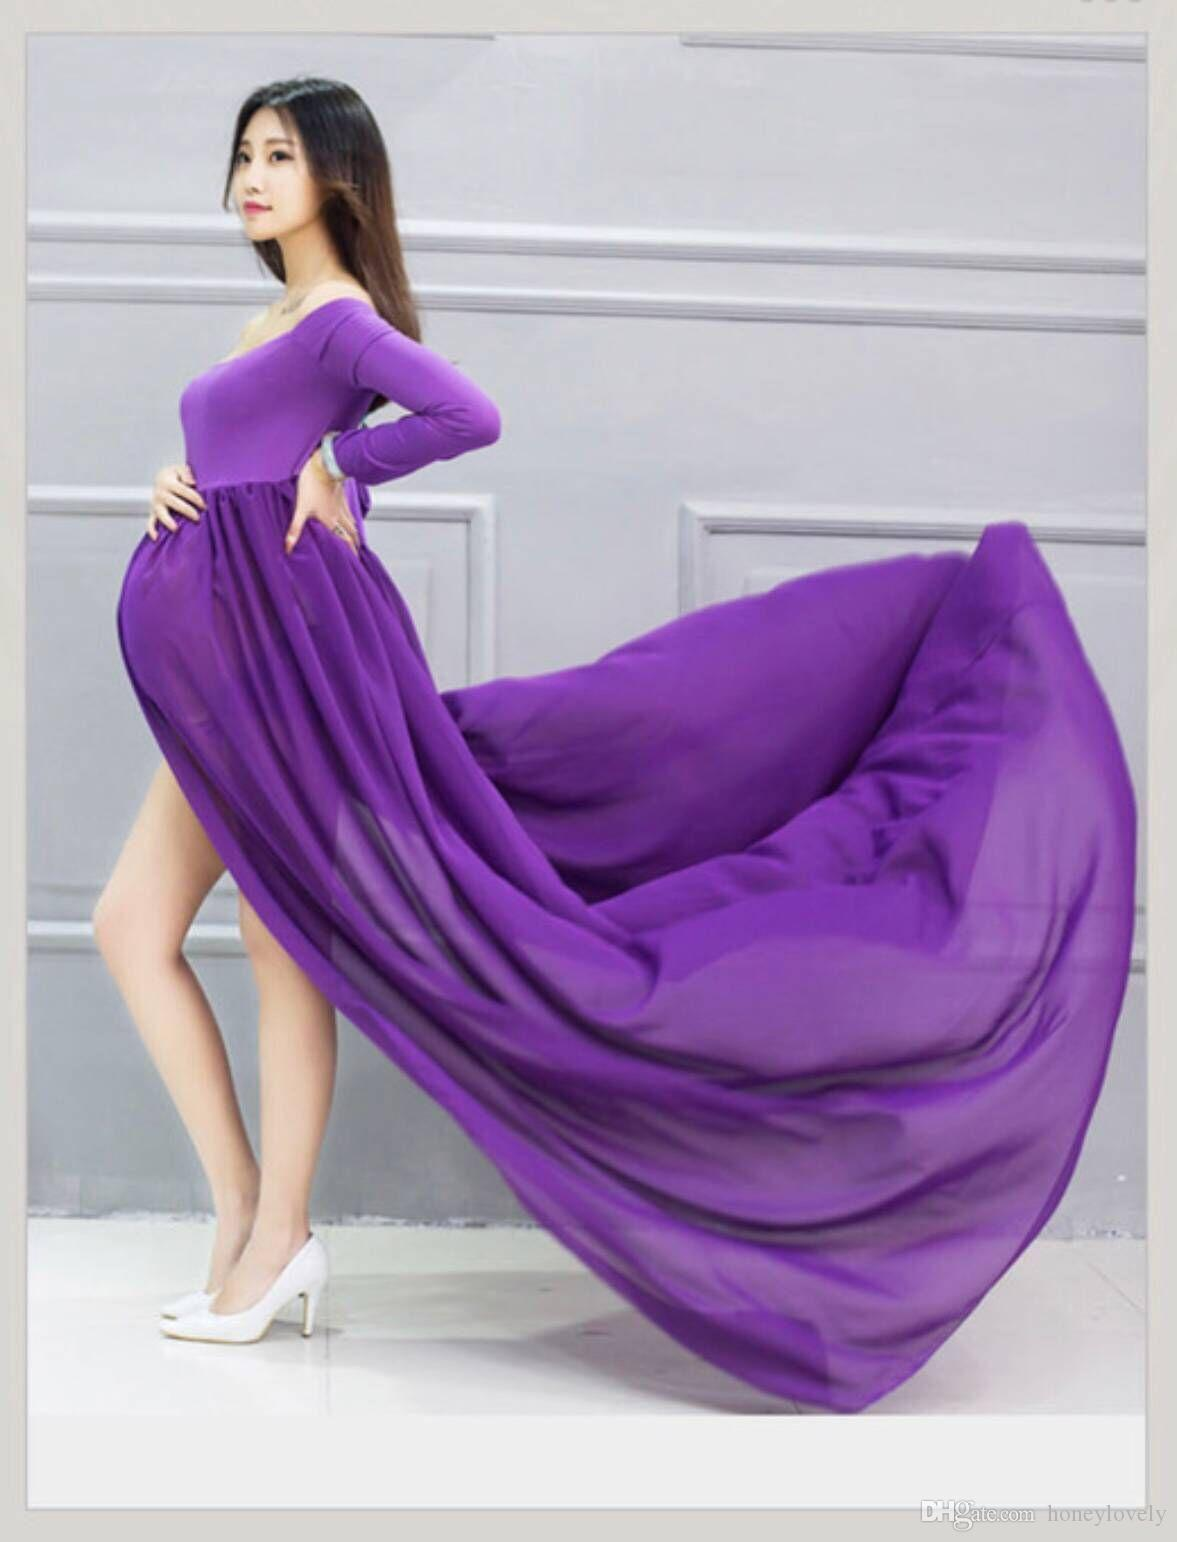 0e591072e7c59 Aliexpress Ebay's New studio maternity dress photo dress maternity  photography chiffon floor-length skirt euro-american style dress